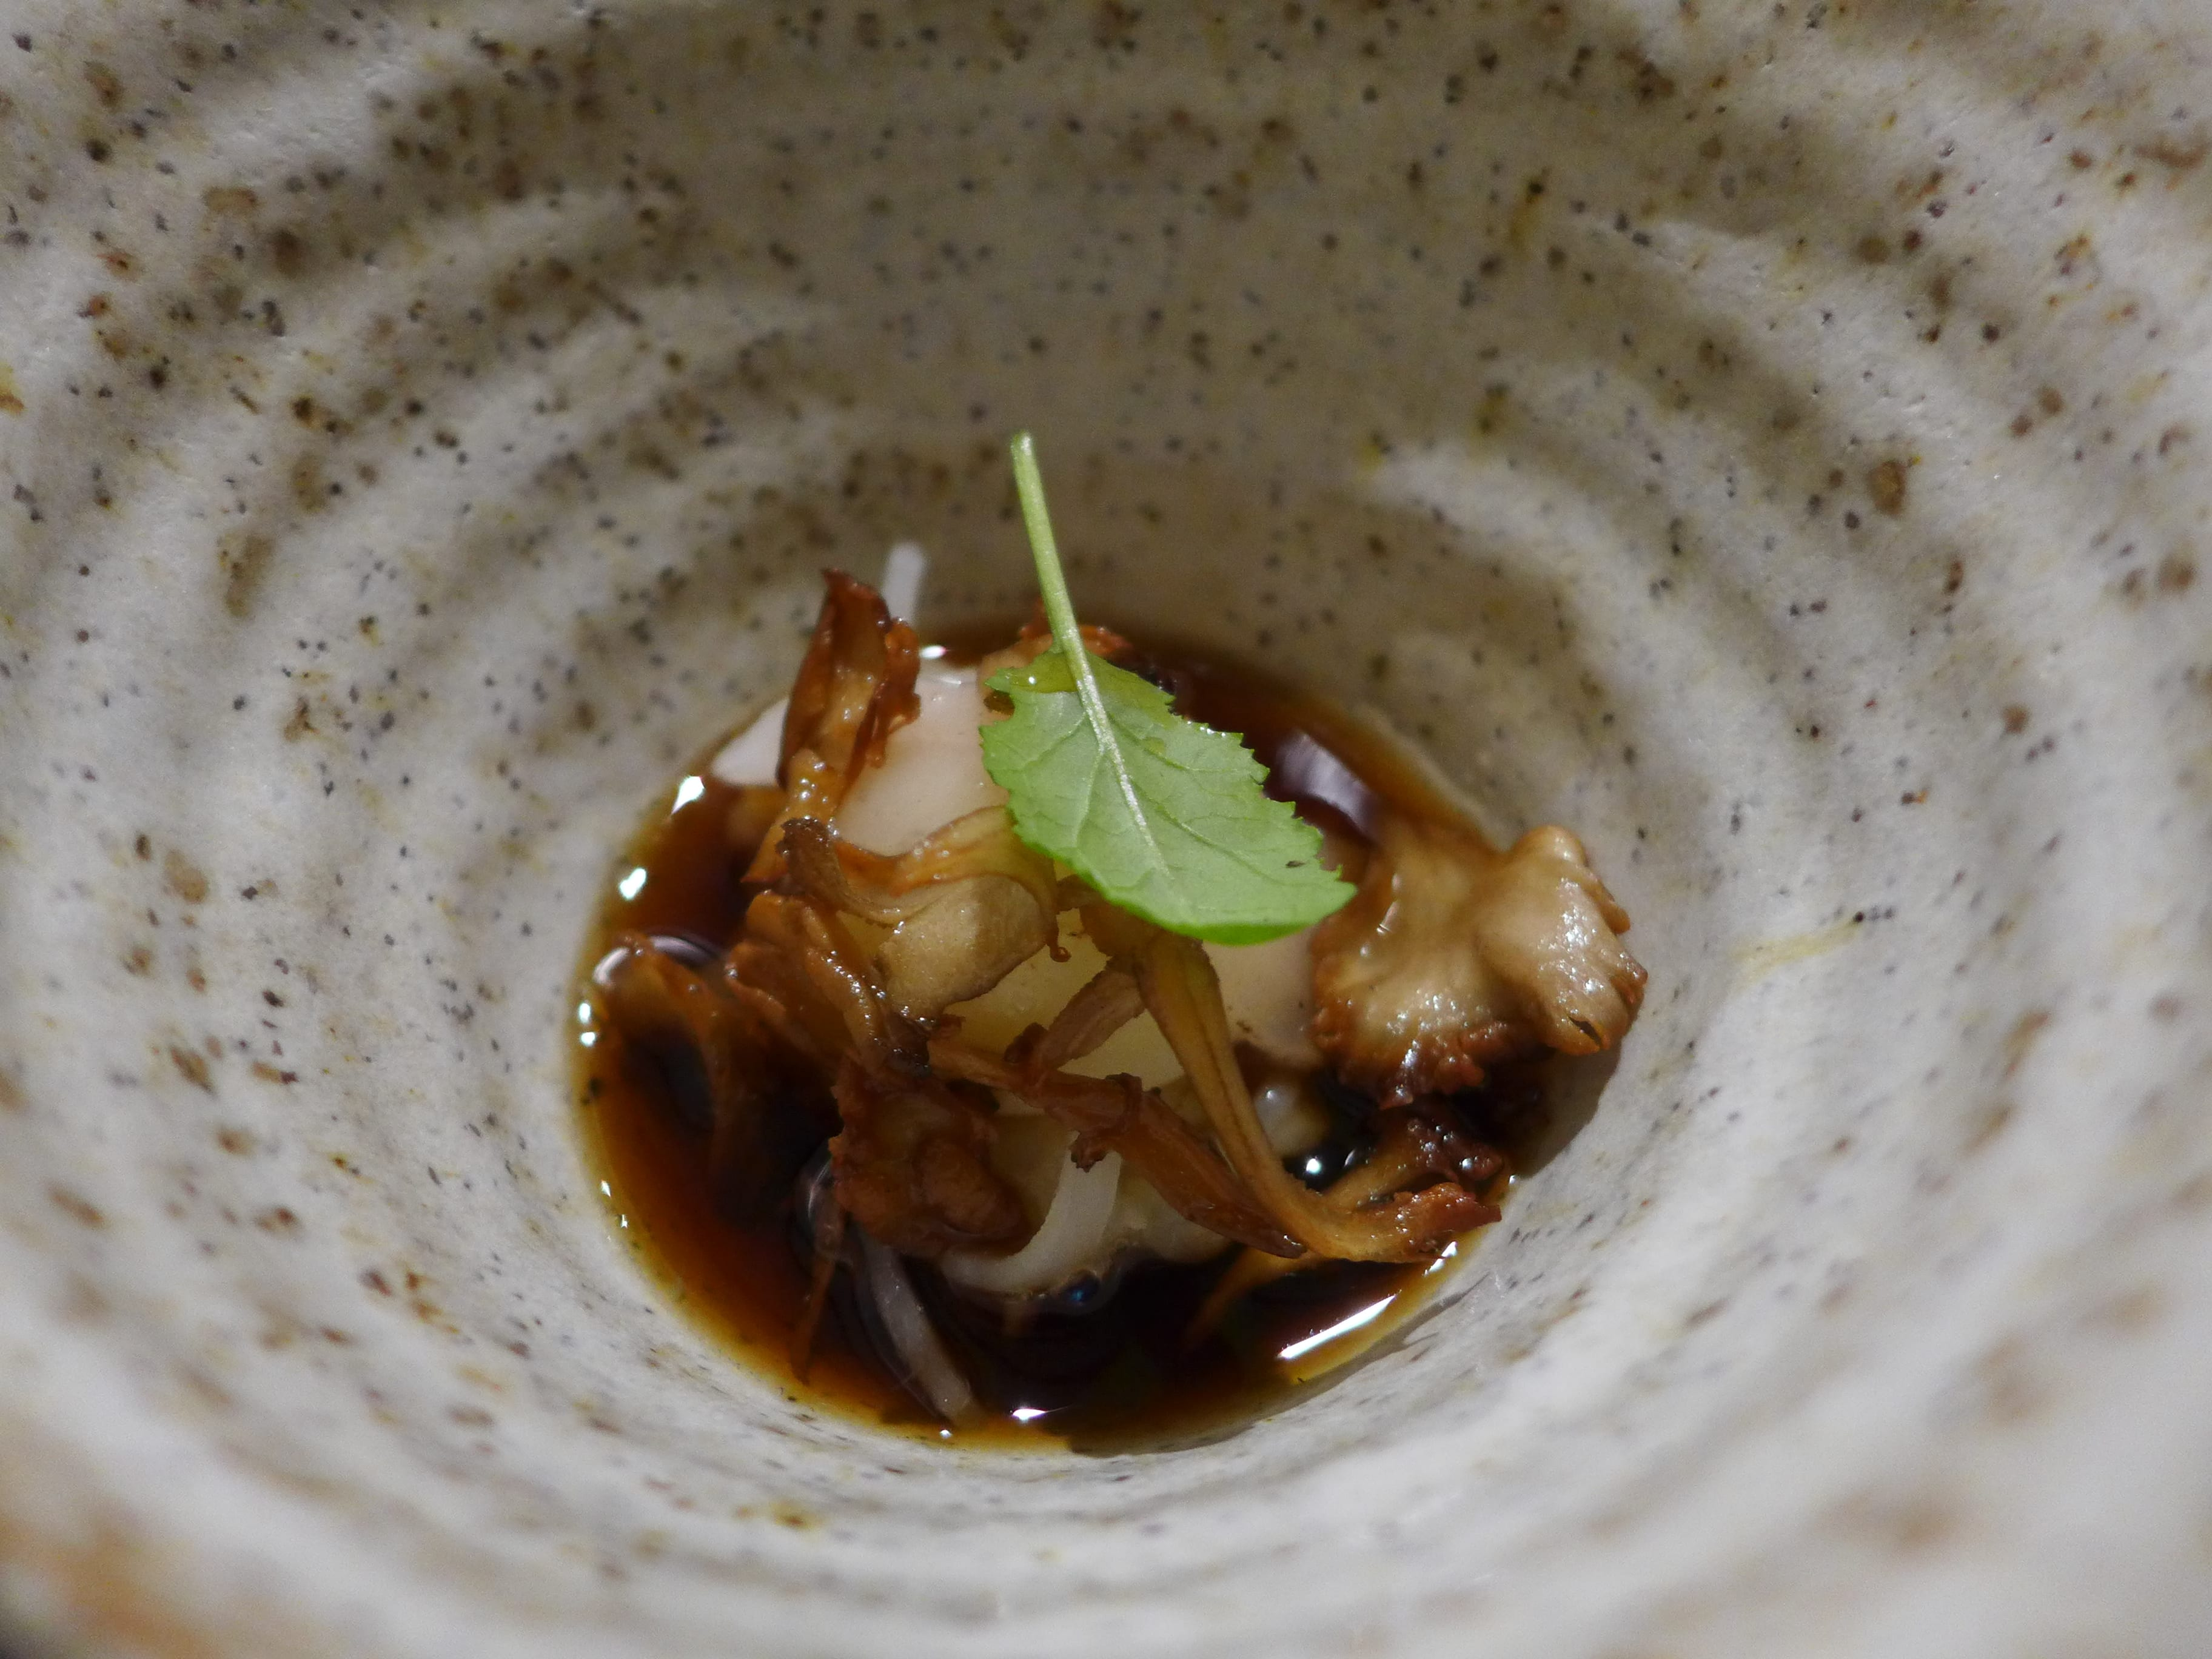 L'enclume - Broth of artichoke, Westcombe, hen of the woods (close-up)